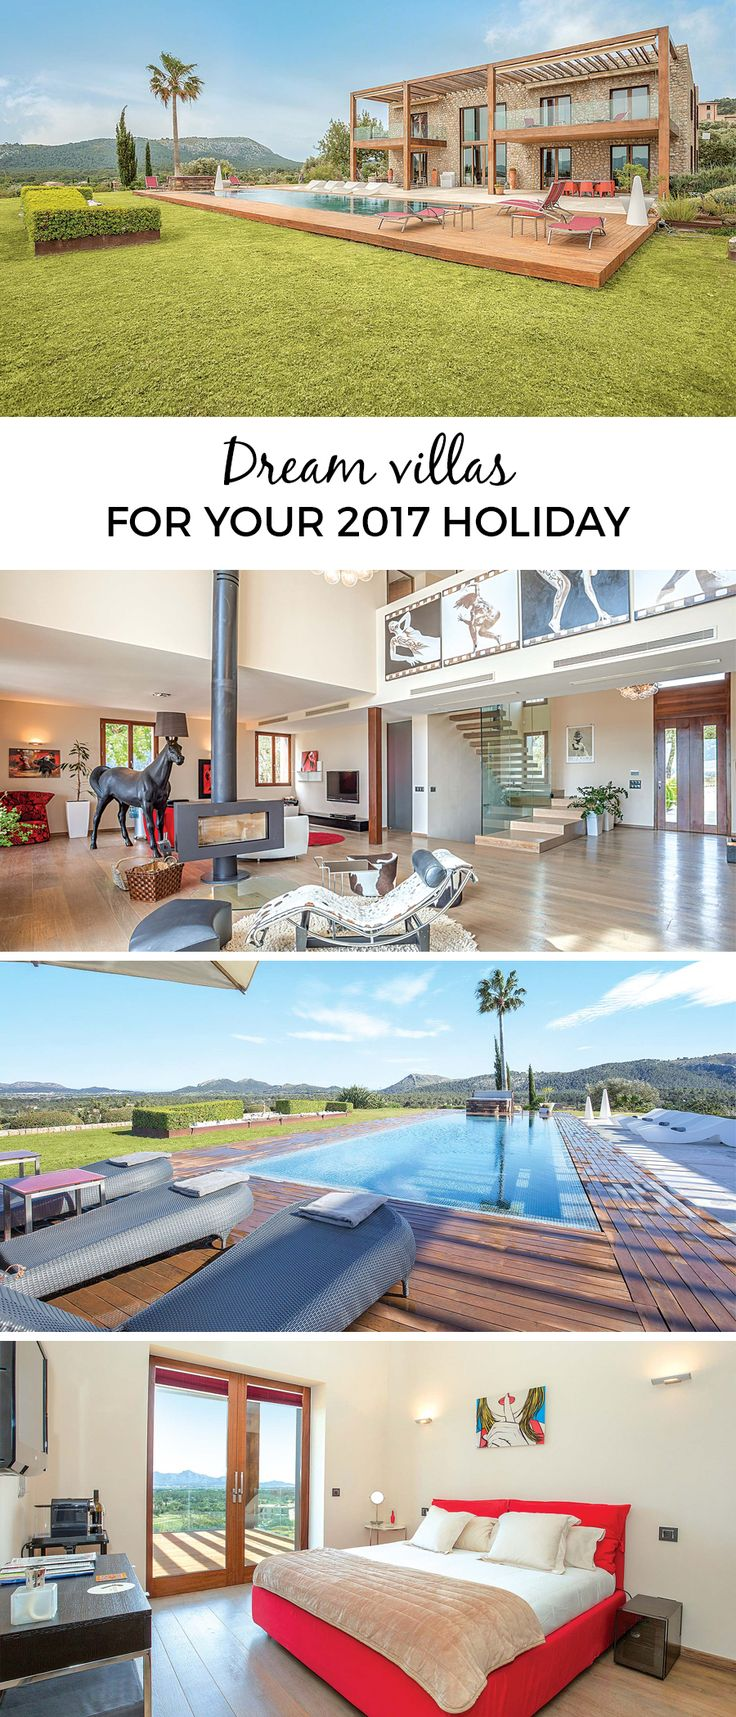 Dream Villas for your 2017 Holiday at James Vila Holidays